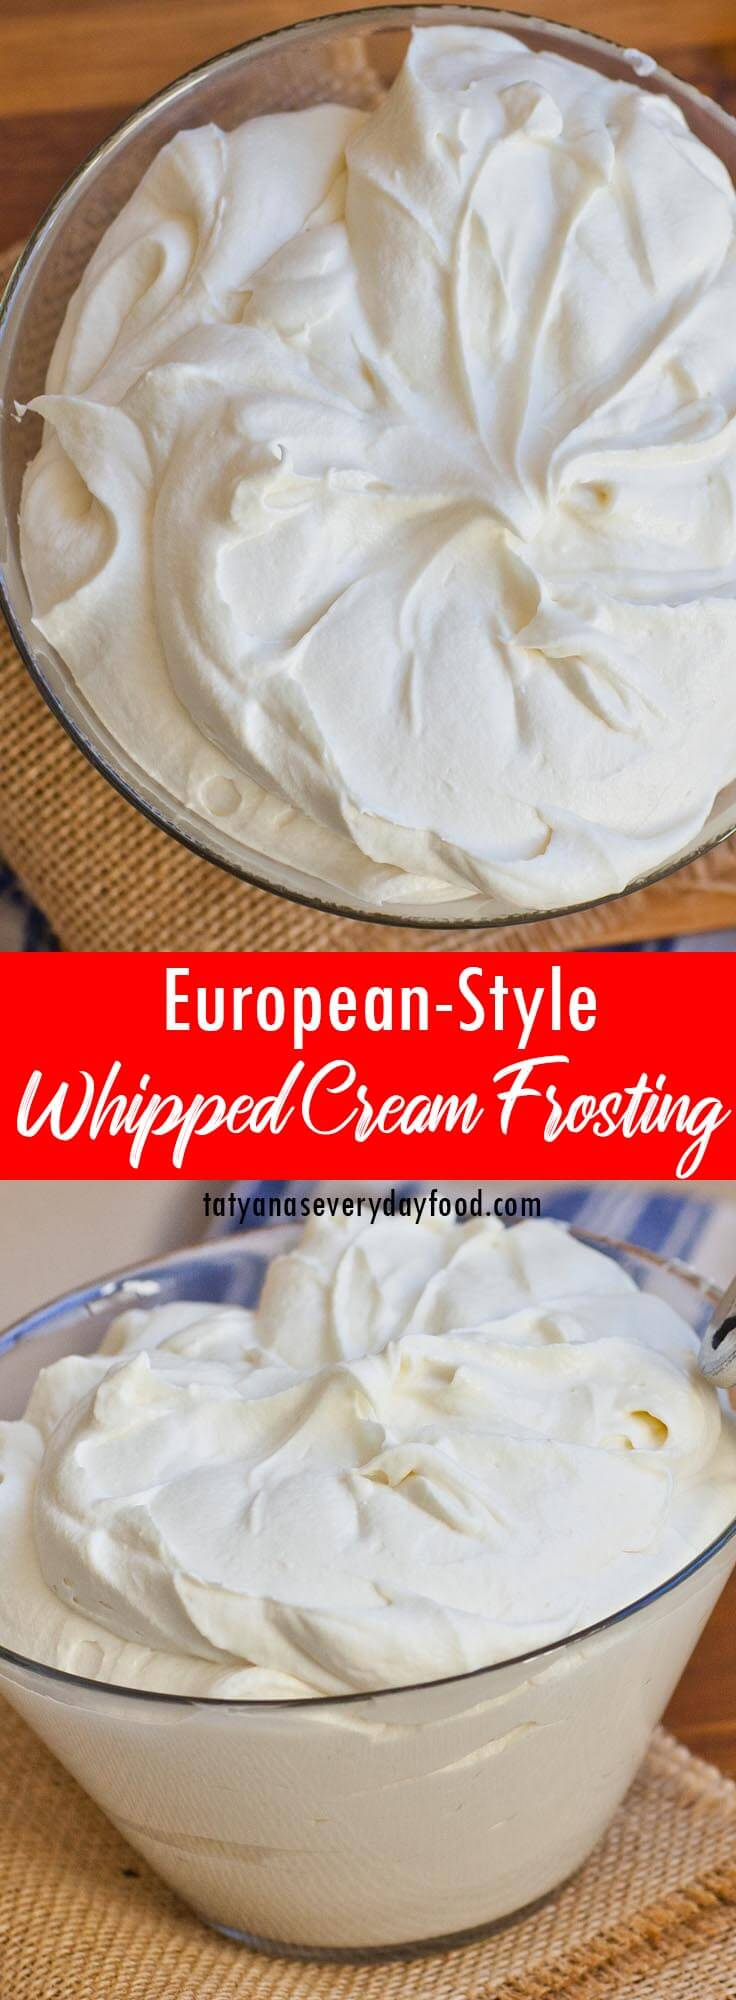 European-Style Whipped Cream Frosting video recipe